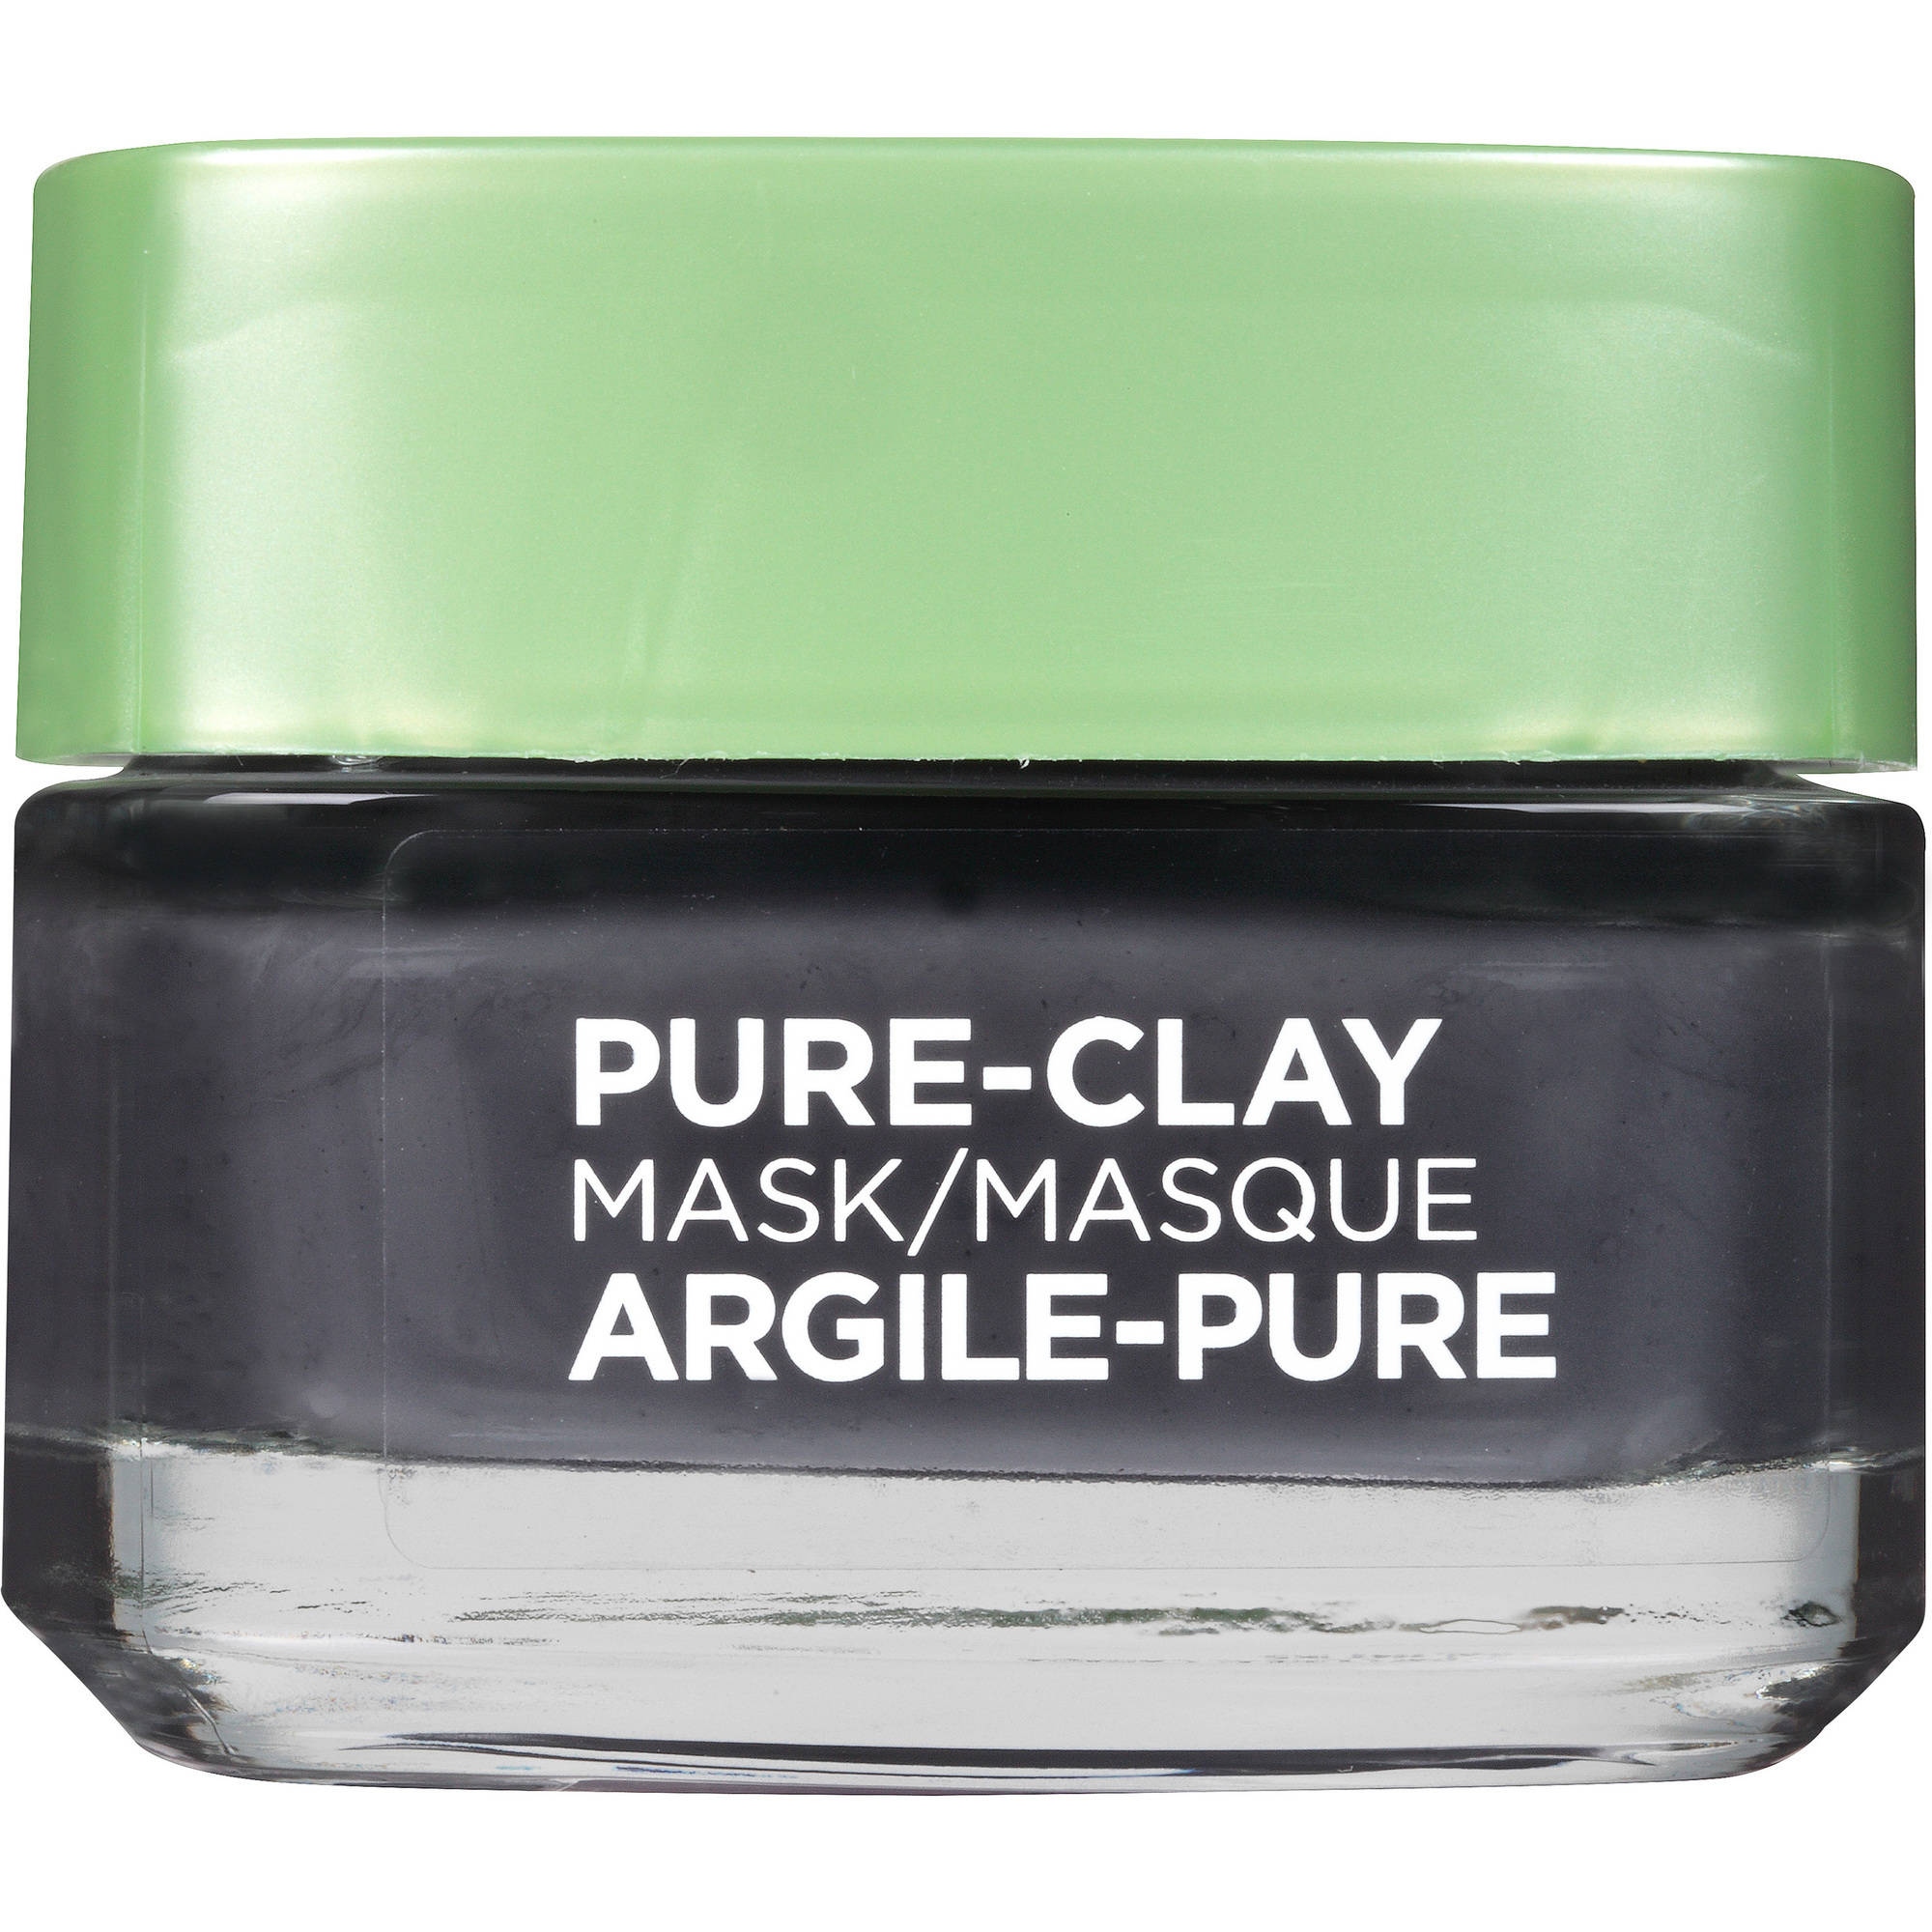 L'Oreal Paris Detox & Brighten Pure Clay Mask with Charcoal